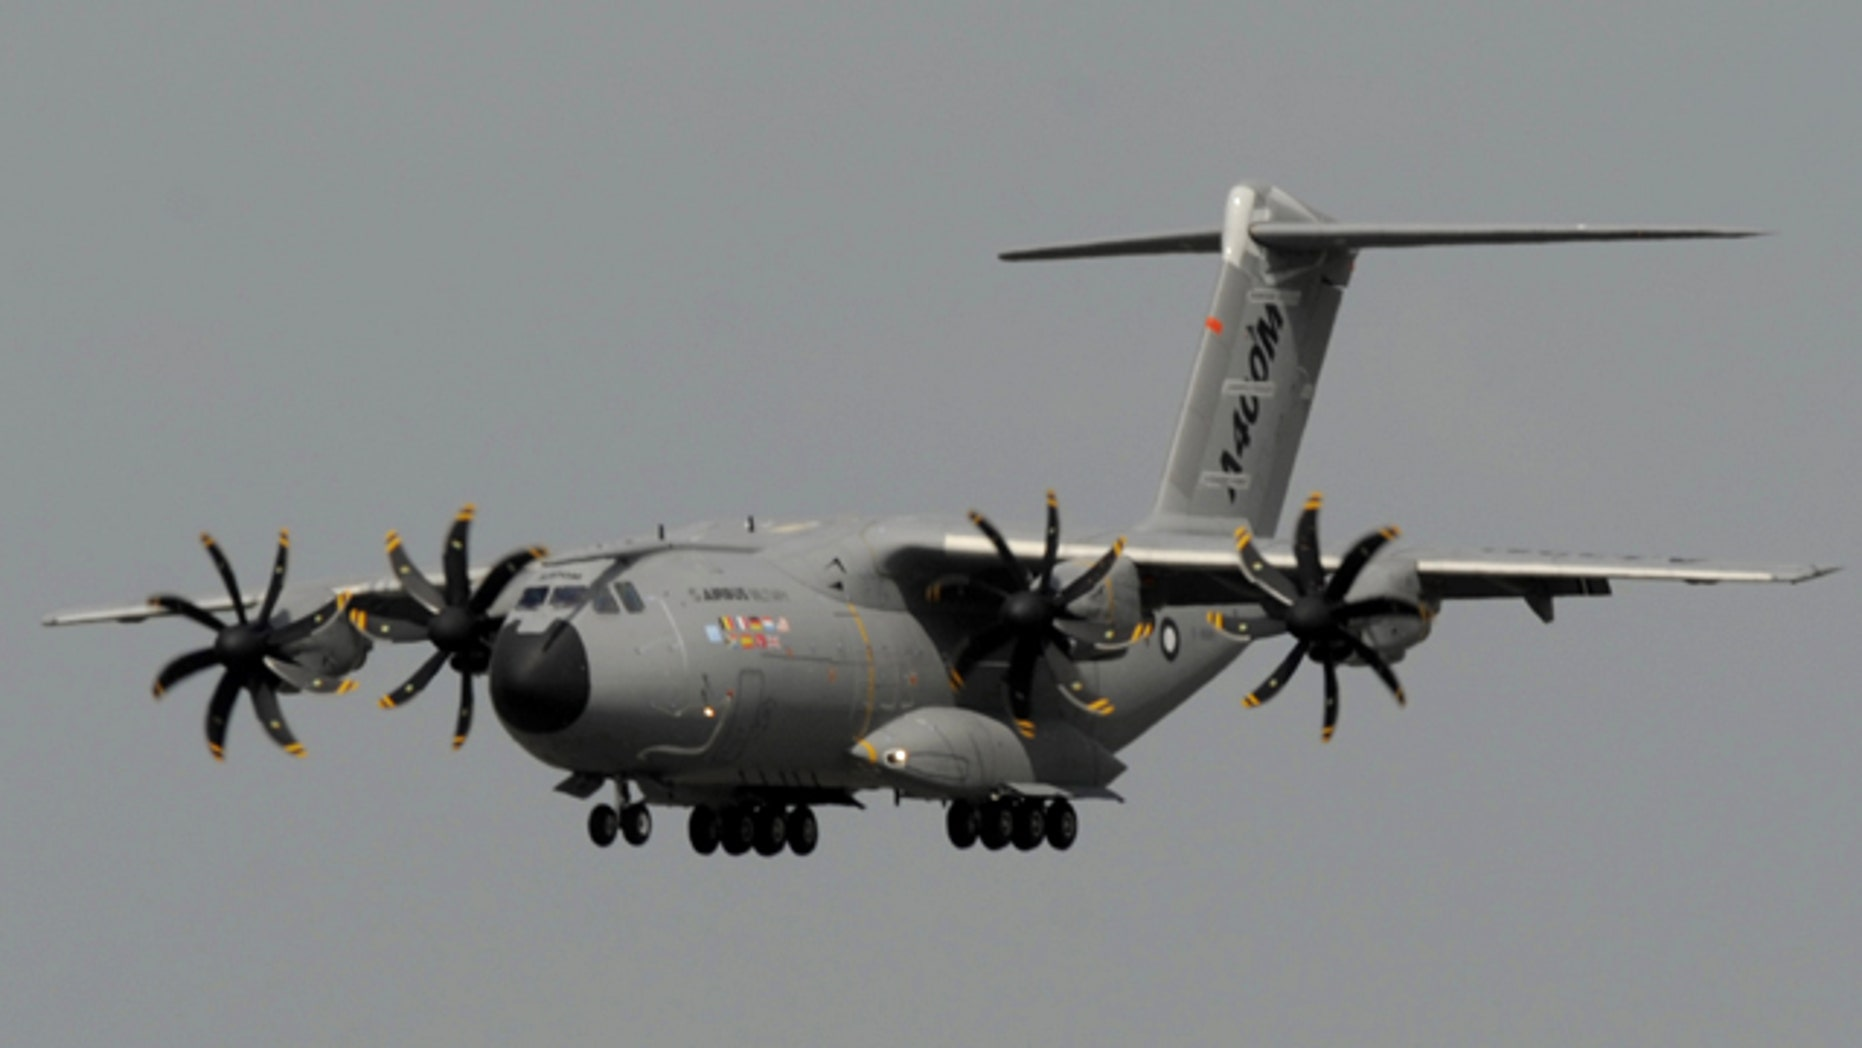 The military transport Airbus A400M lands at the airfield prior to the start of the International Air Show ILA at Schoenefeld airport in Berlin on Monday, June 7, 2010. Visitors will be able to get an exclusive first glimpse of the aircraft, the all-new airlifter for the 21st century and Airbus Military's latest development.